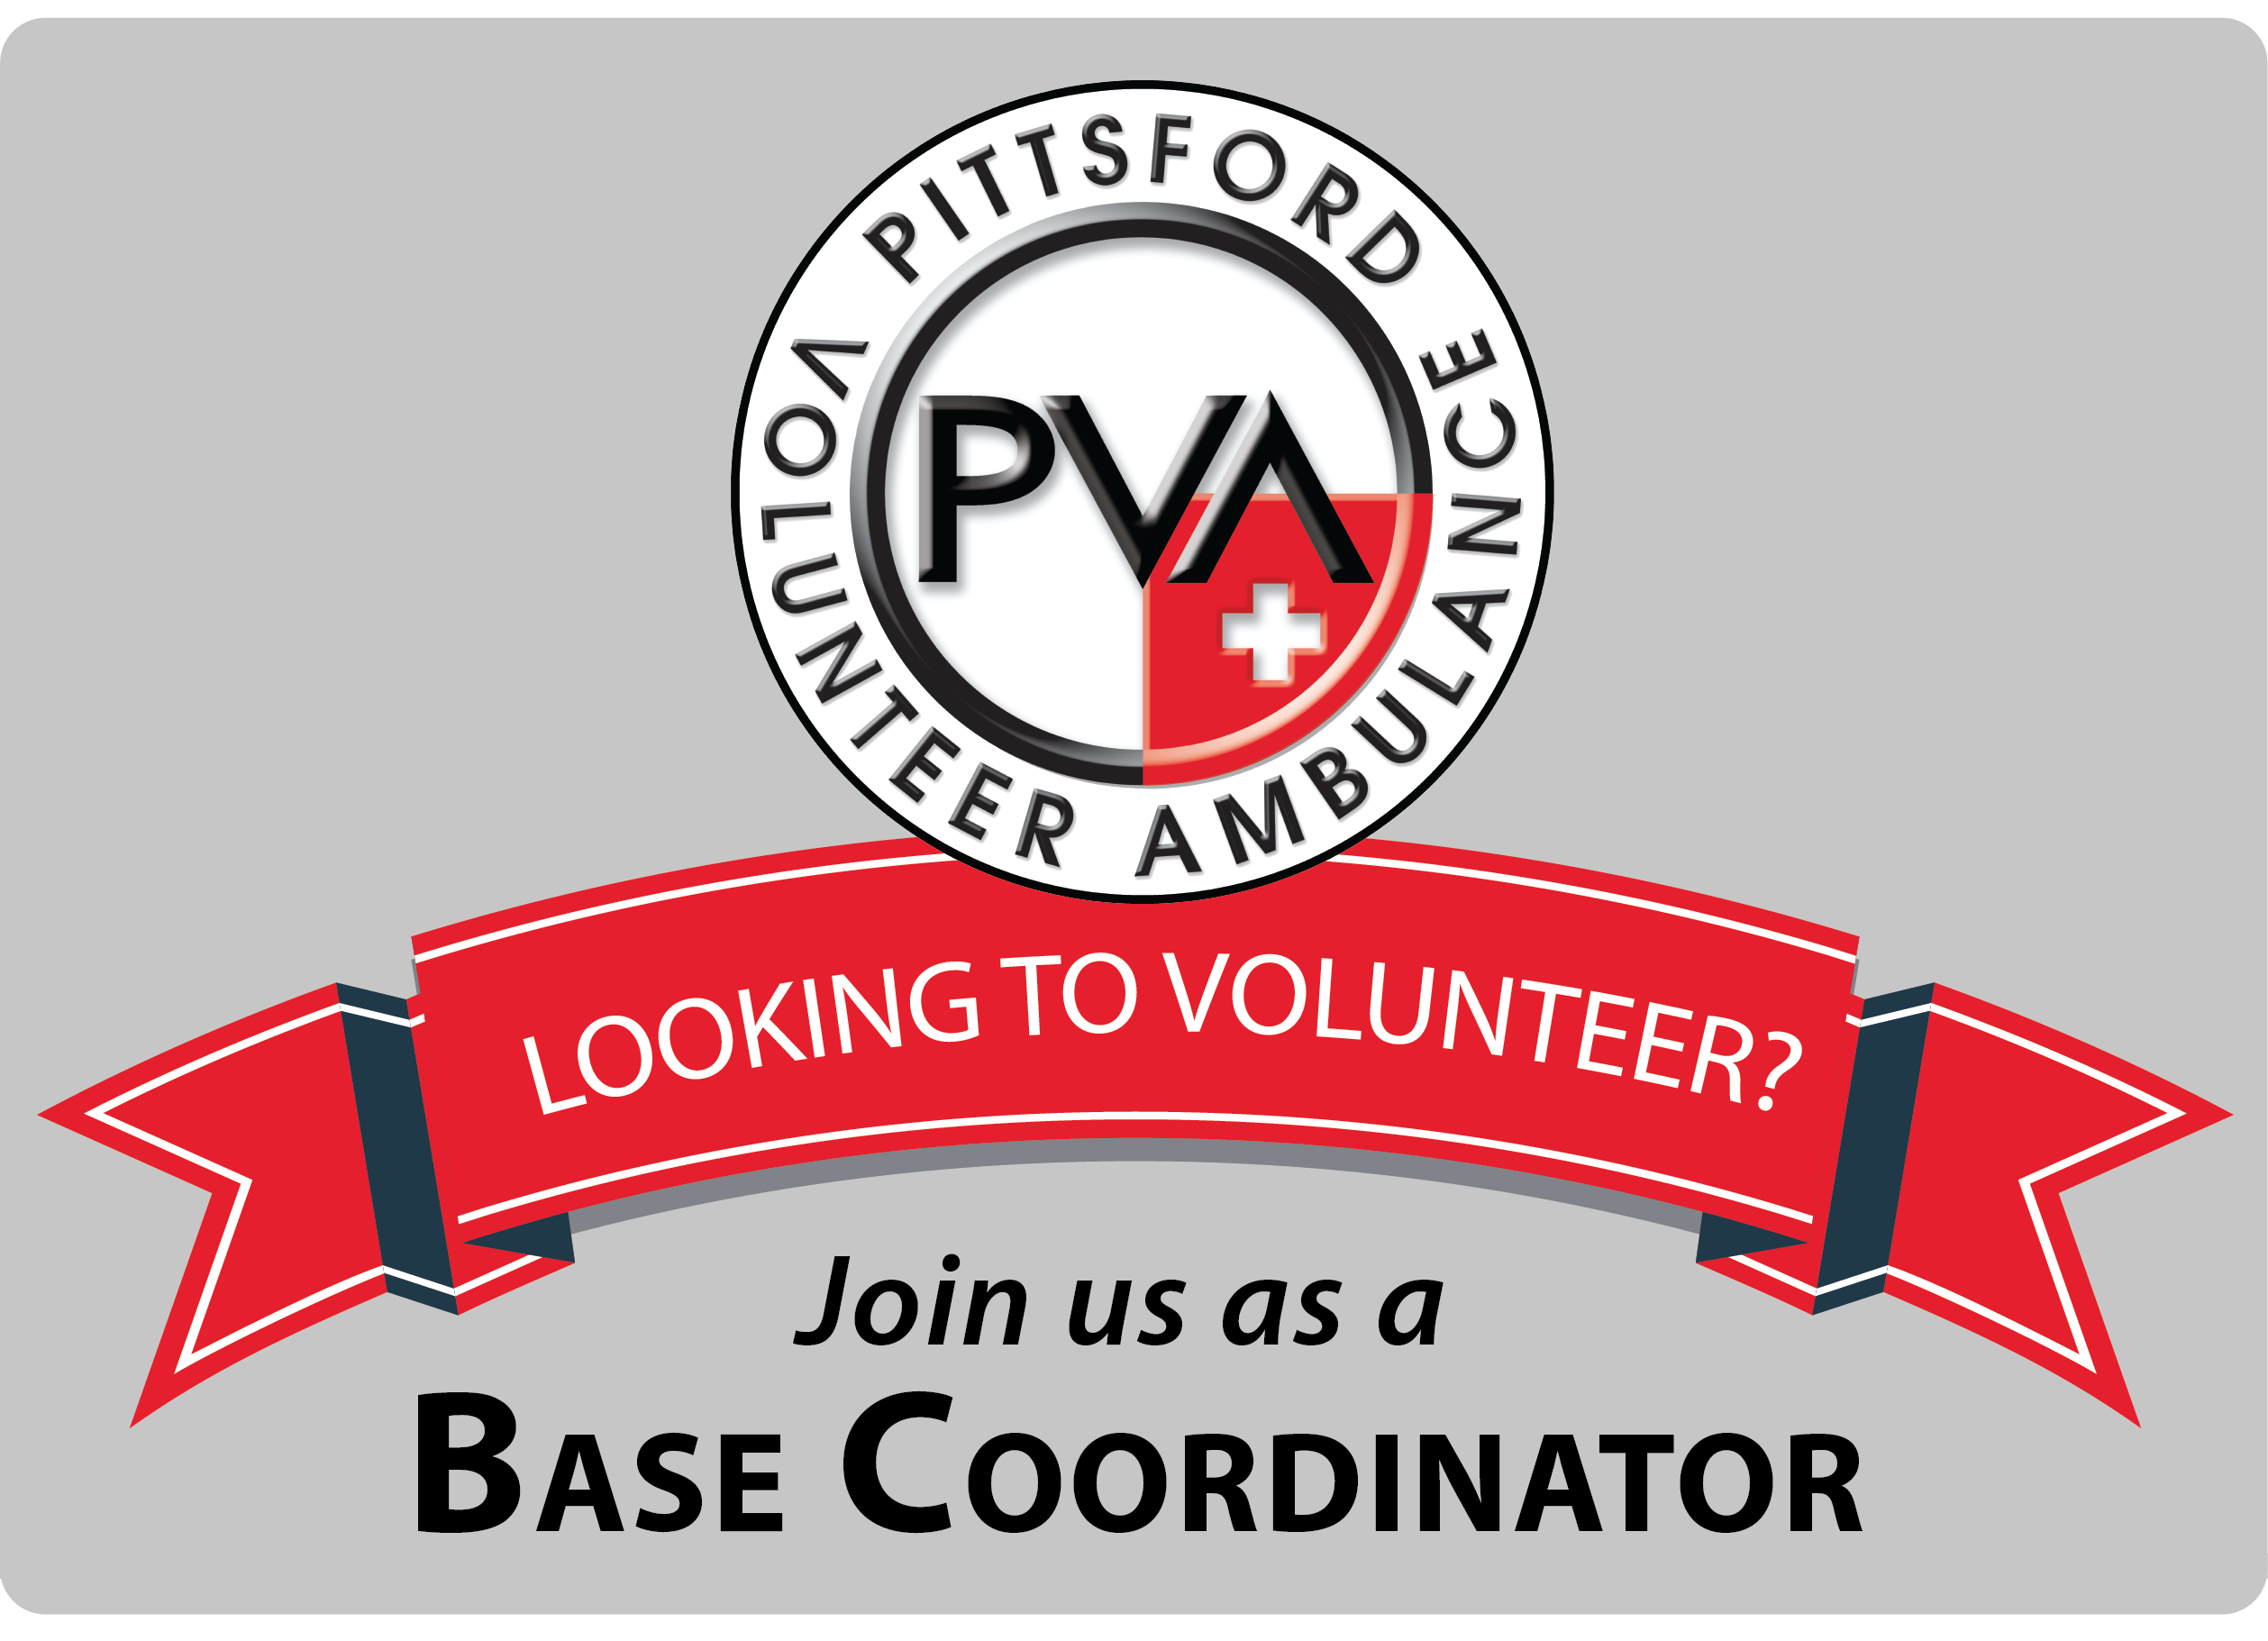 Join PVA as a Base Coordinator